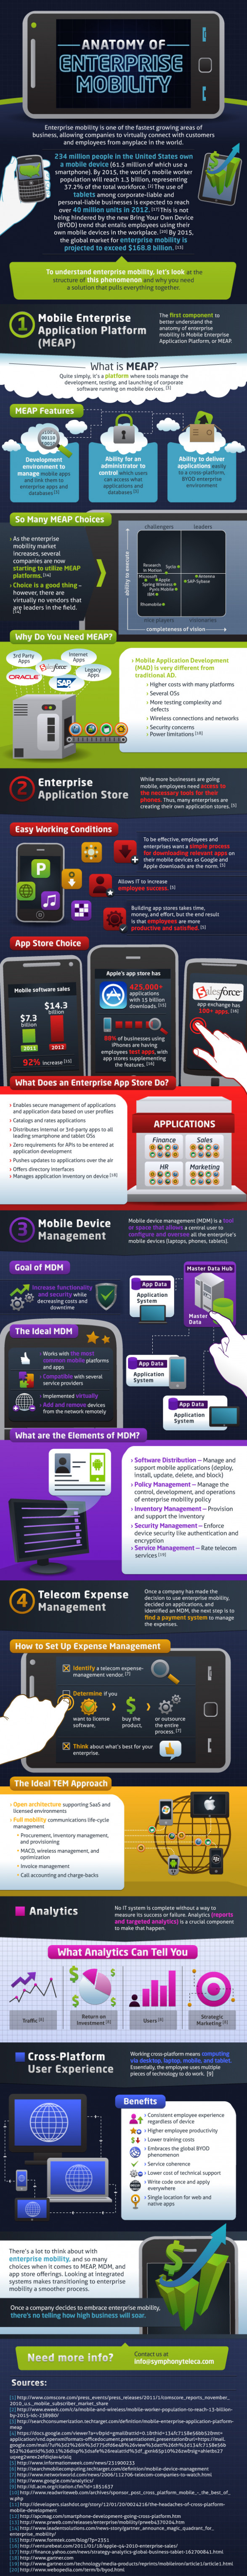 Anatomy of Enterprise Mobility